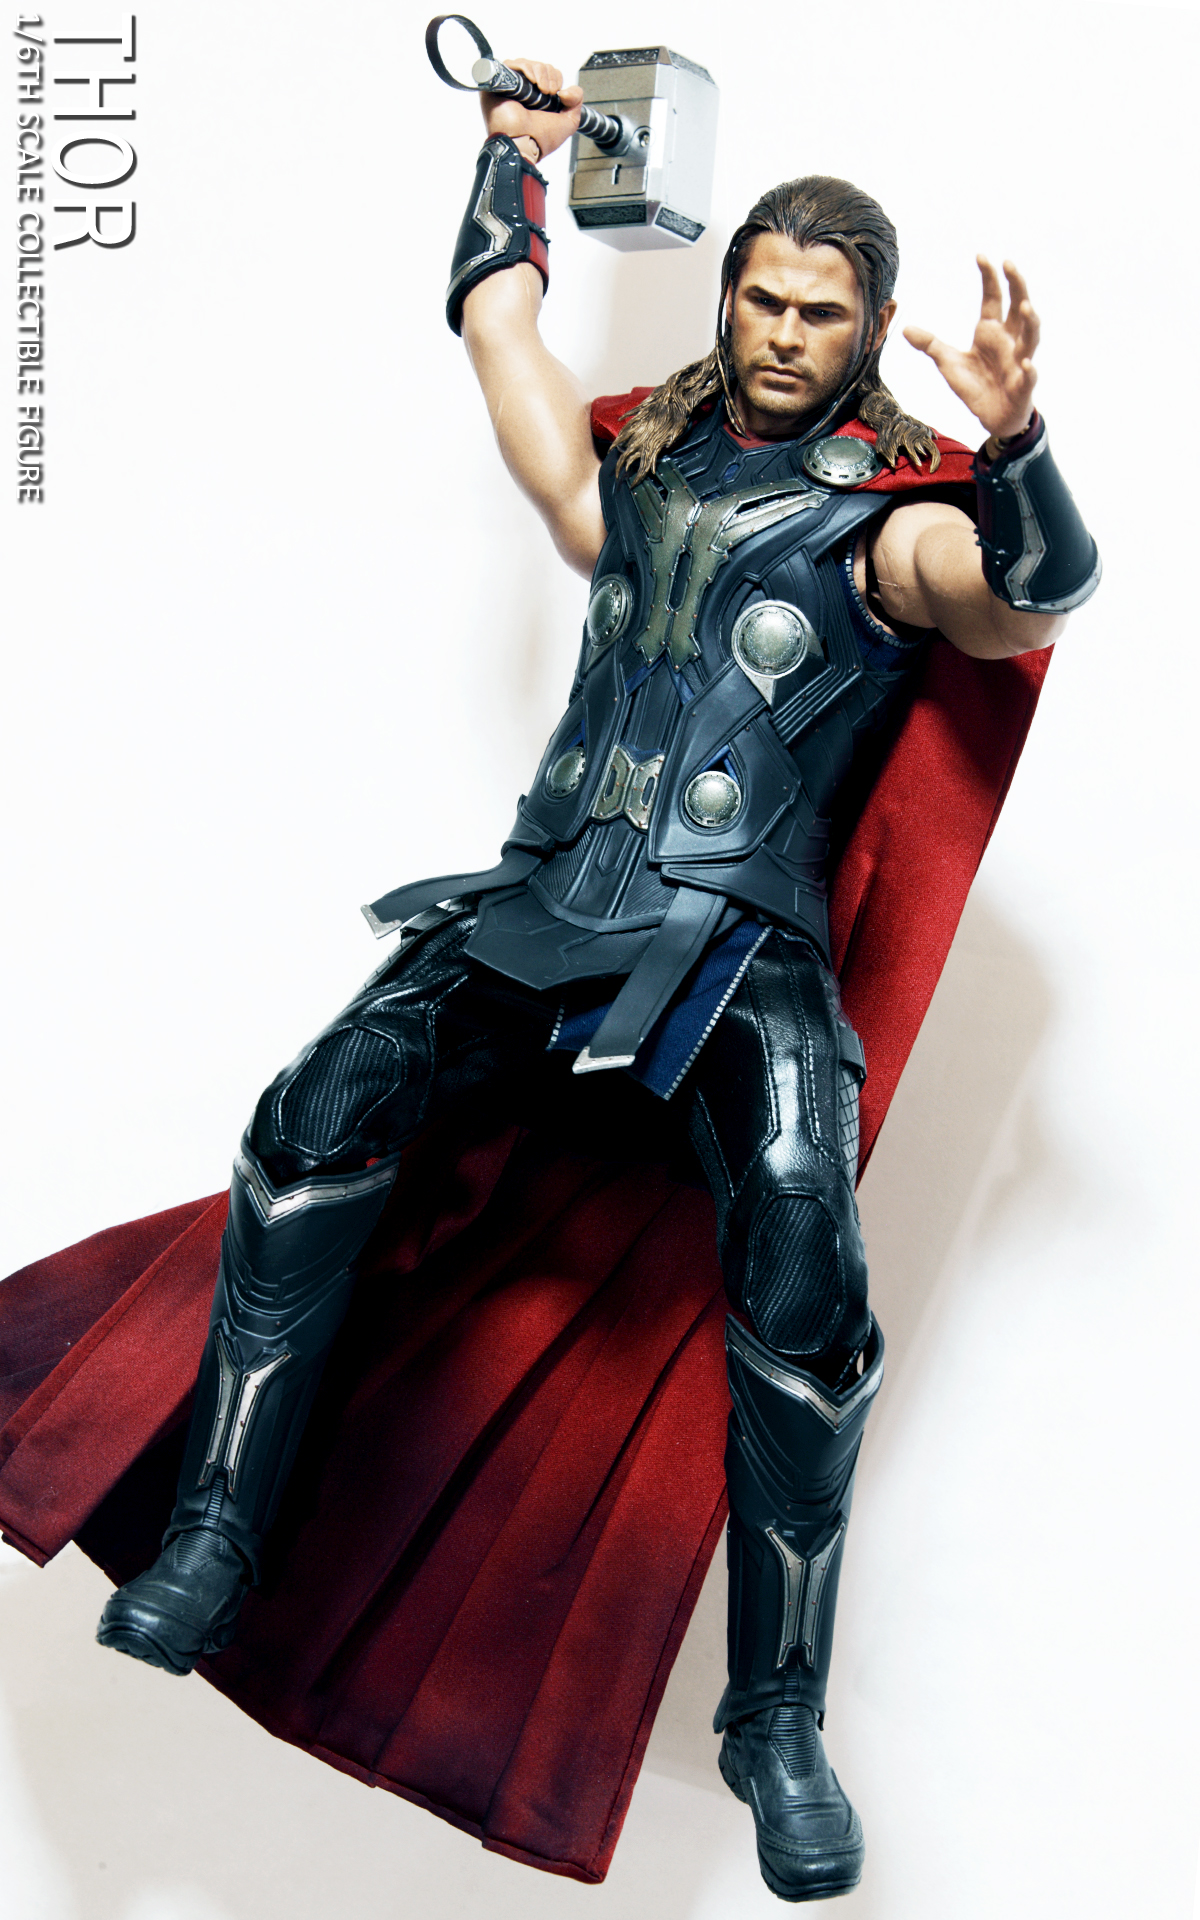 hot-toys-avengers-age-of-ultron-thor-picture-03